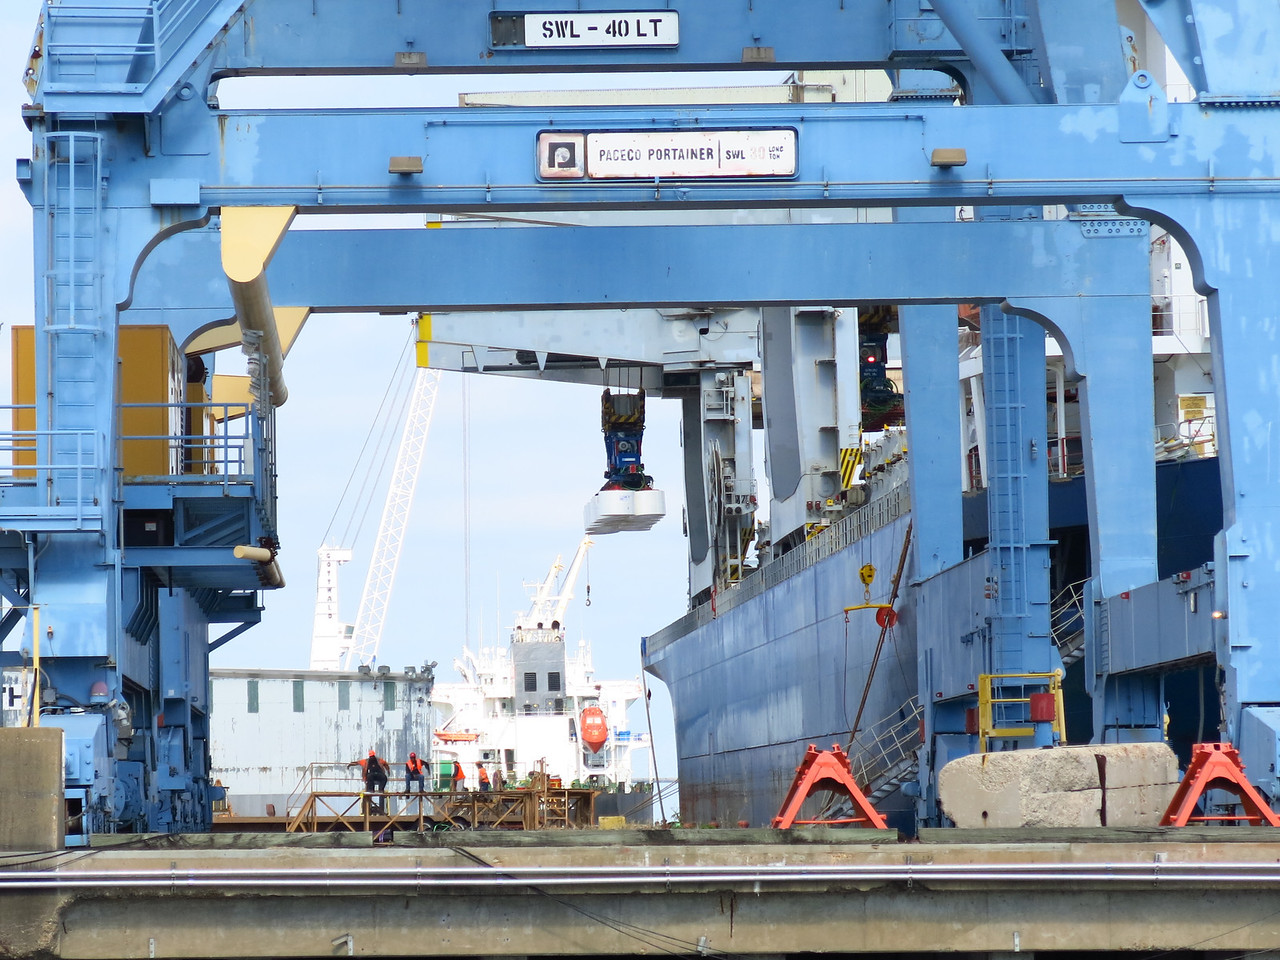 White material is being loaded by a crane attached to the ship